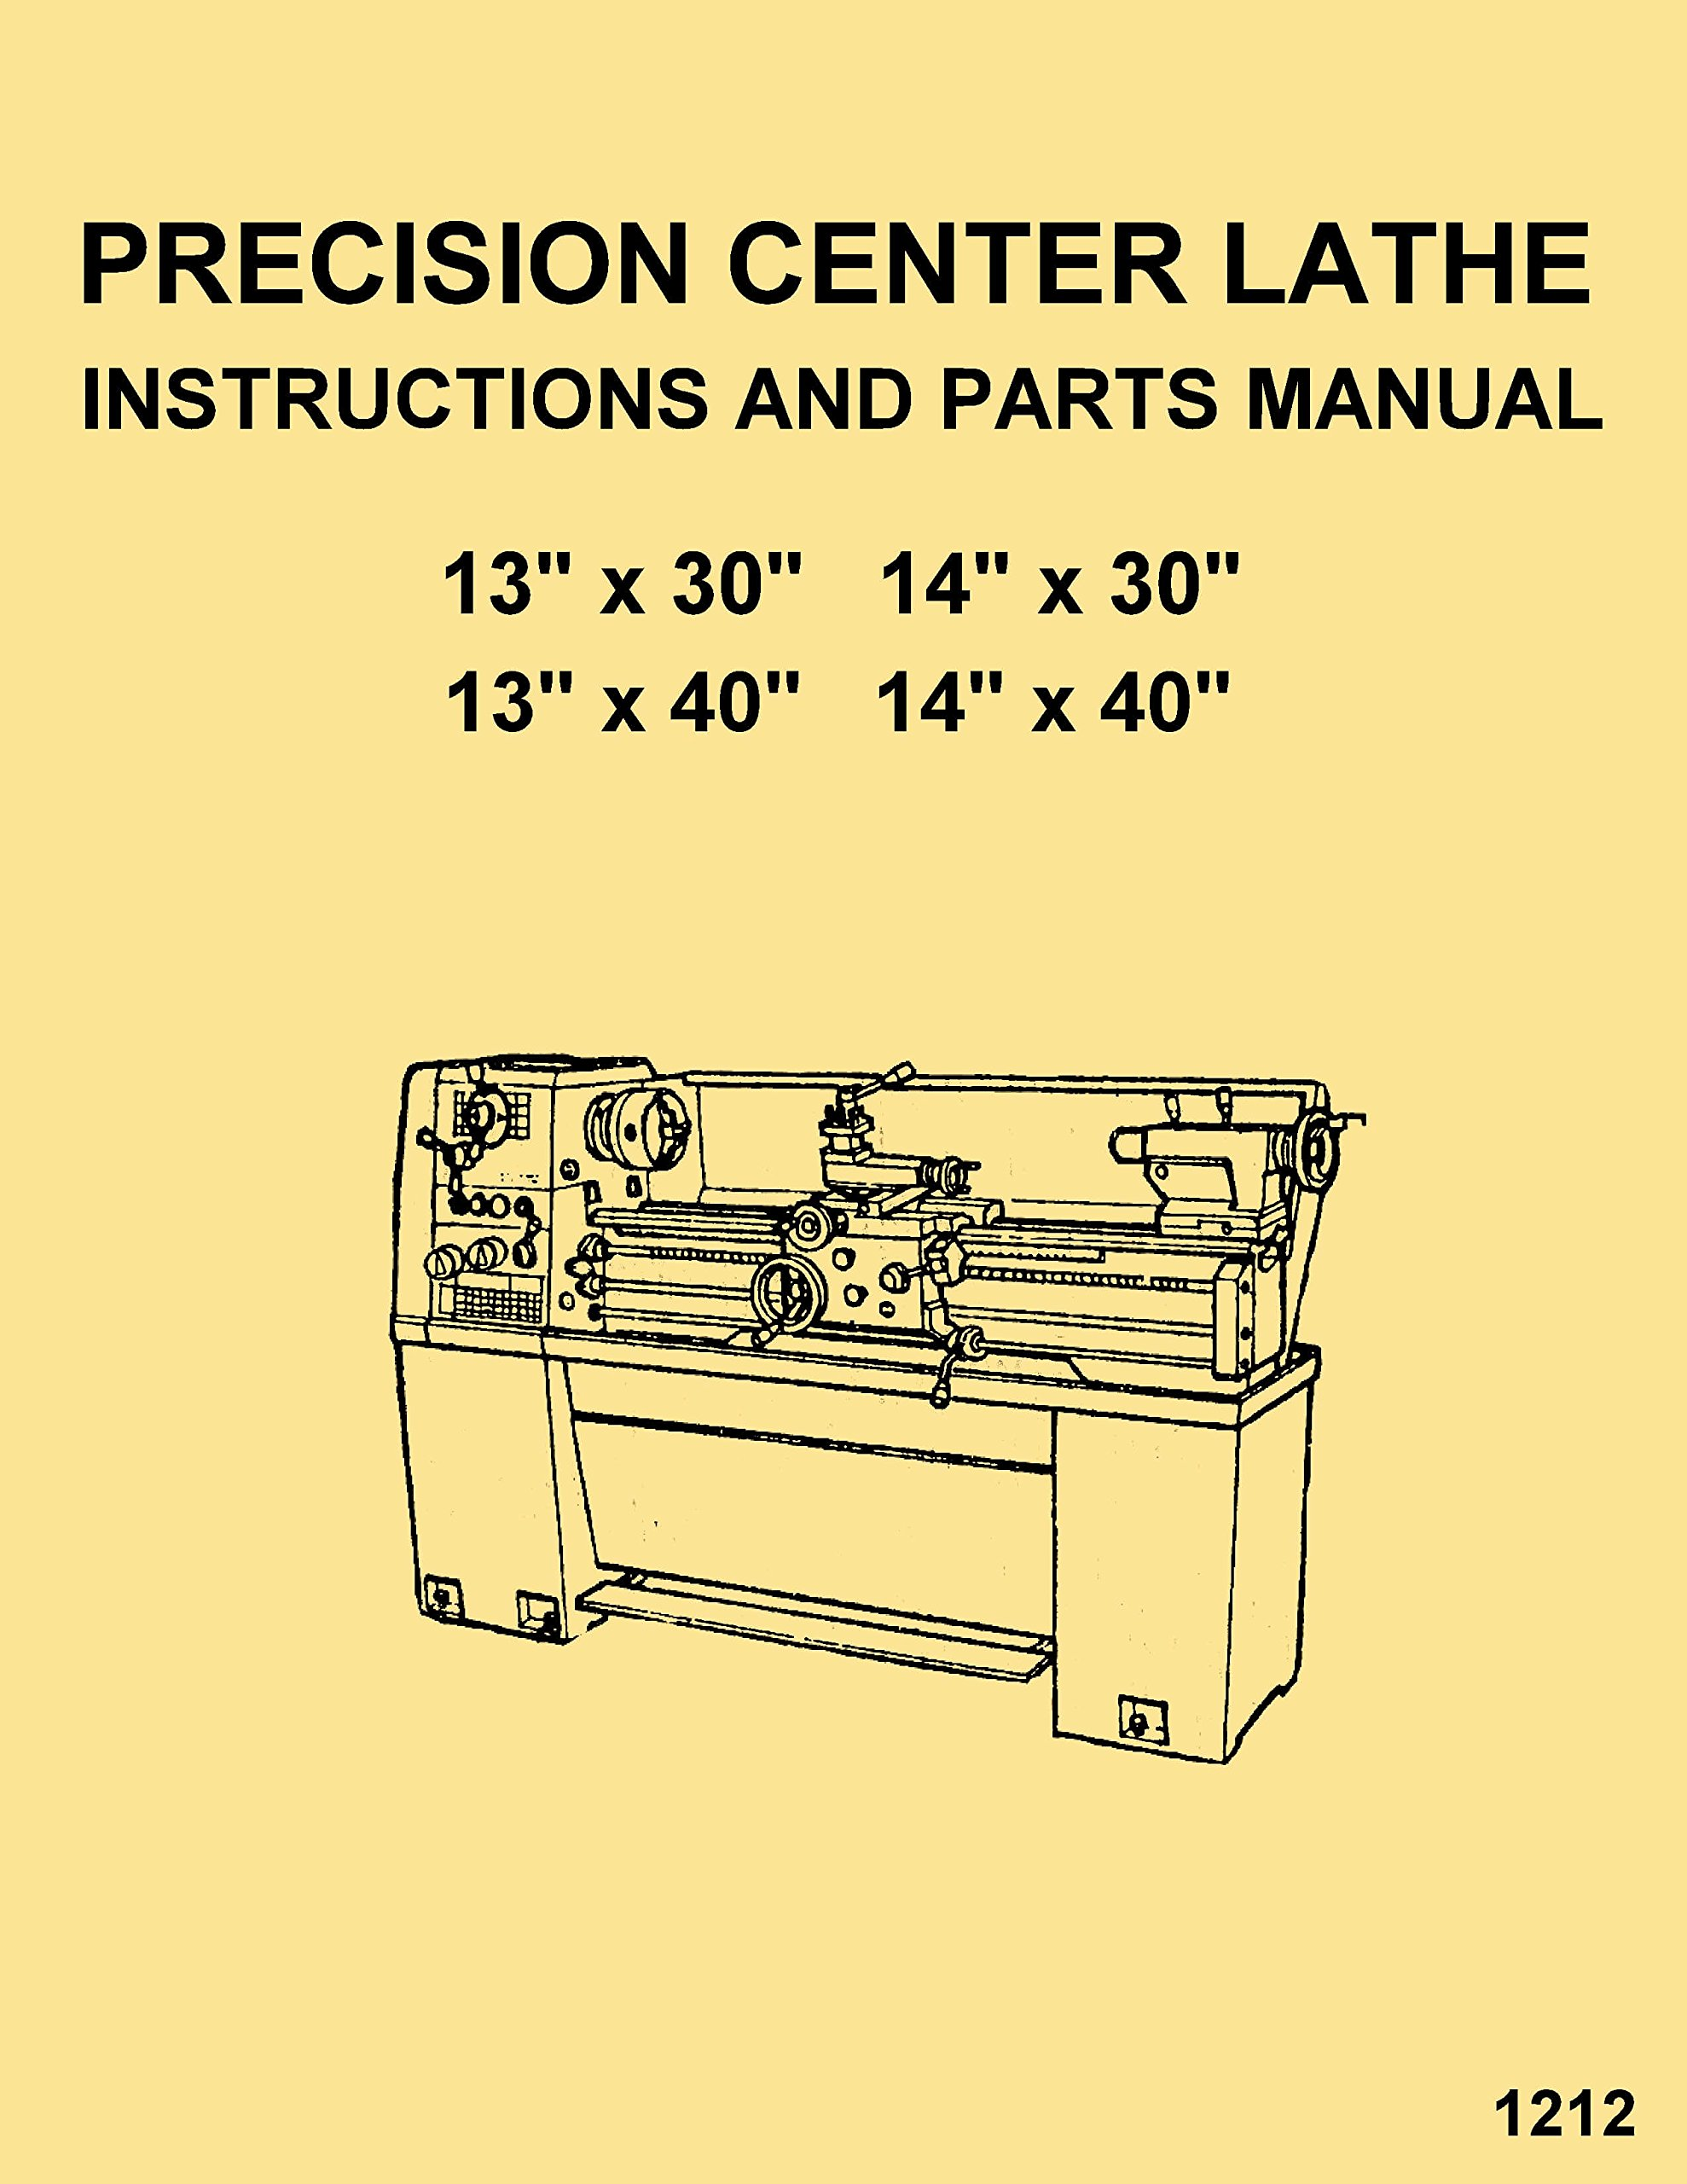 Enco, Warco, JET, Asian 1330 1340 1430 1440 Metal Lathe Instructions  Operator's & Parts Manual: Misc.: Amazon.com: Books